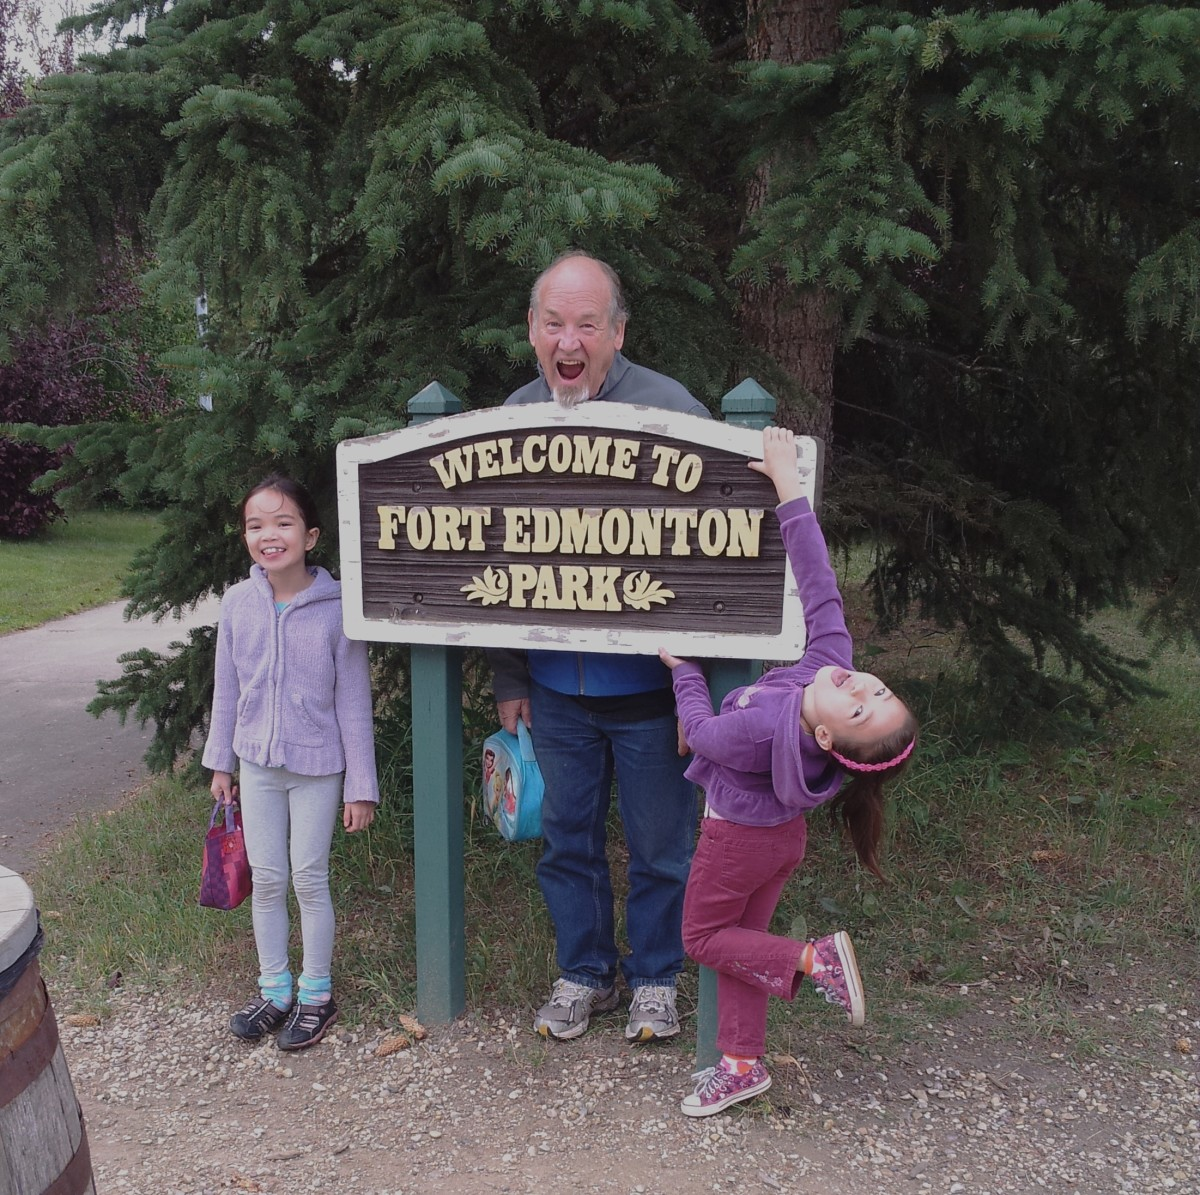 So much fun to be a Grandpa and walk down the historical lanes of old Fort Edmonton!